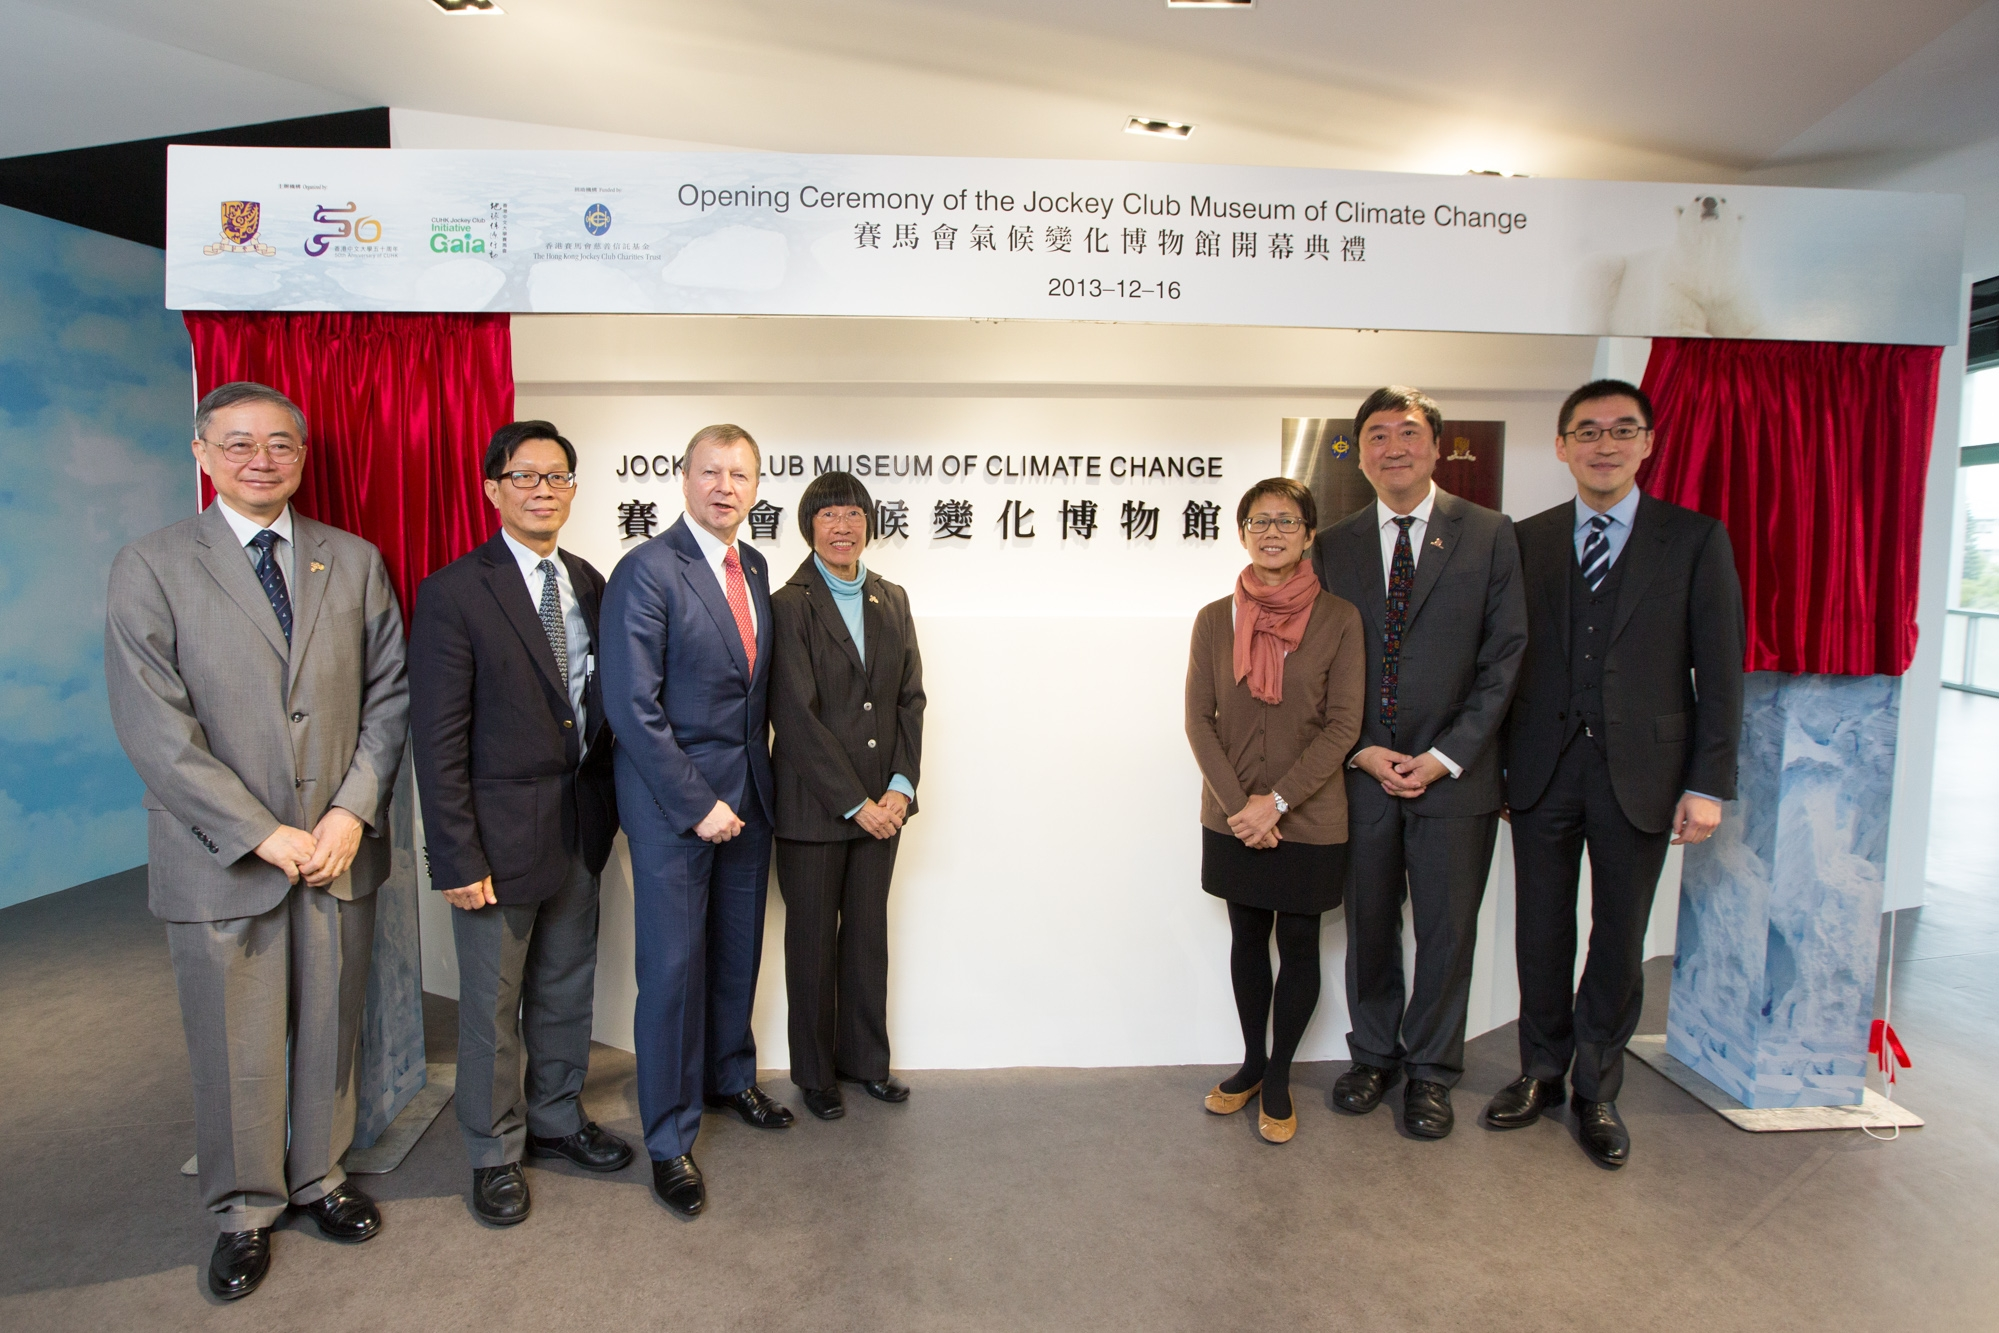 Unveiling ceremony of the Jockey Club Museum of Climate Change: (from left) Prof Gabriel LAU, Director of Institute of Environment, Energy and Sustainability, CUHK; Prof P. C. CHING, Pro-Vice-Chancellor of CUHK and Chairman of the Steering Committee of CUHK Jockey Club Initiative Gaia; Mr Winfried ENGELBRECHT-BRESGES, Chief Executive Officer of the Hong Kong Jockey Club; Dr Rebecca LEE, Founder of Polar Museum Foundation; Ms Christine LOH, Under Secretary for the Environment, The HKSAR Government; Prof Joseph J Y SUNG, Vice-Chancellor and President of CUHK; Mr Douglas SO, Executive Director, Charities, Hong Kong Jockey Club